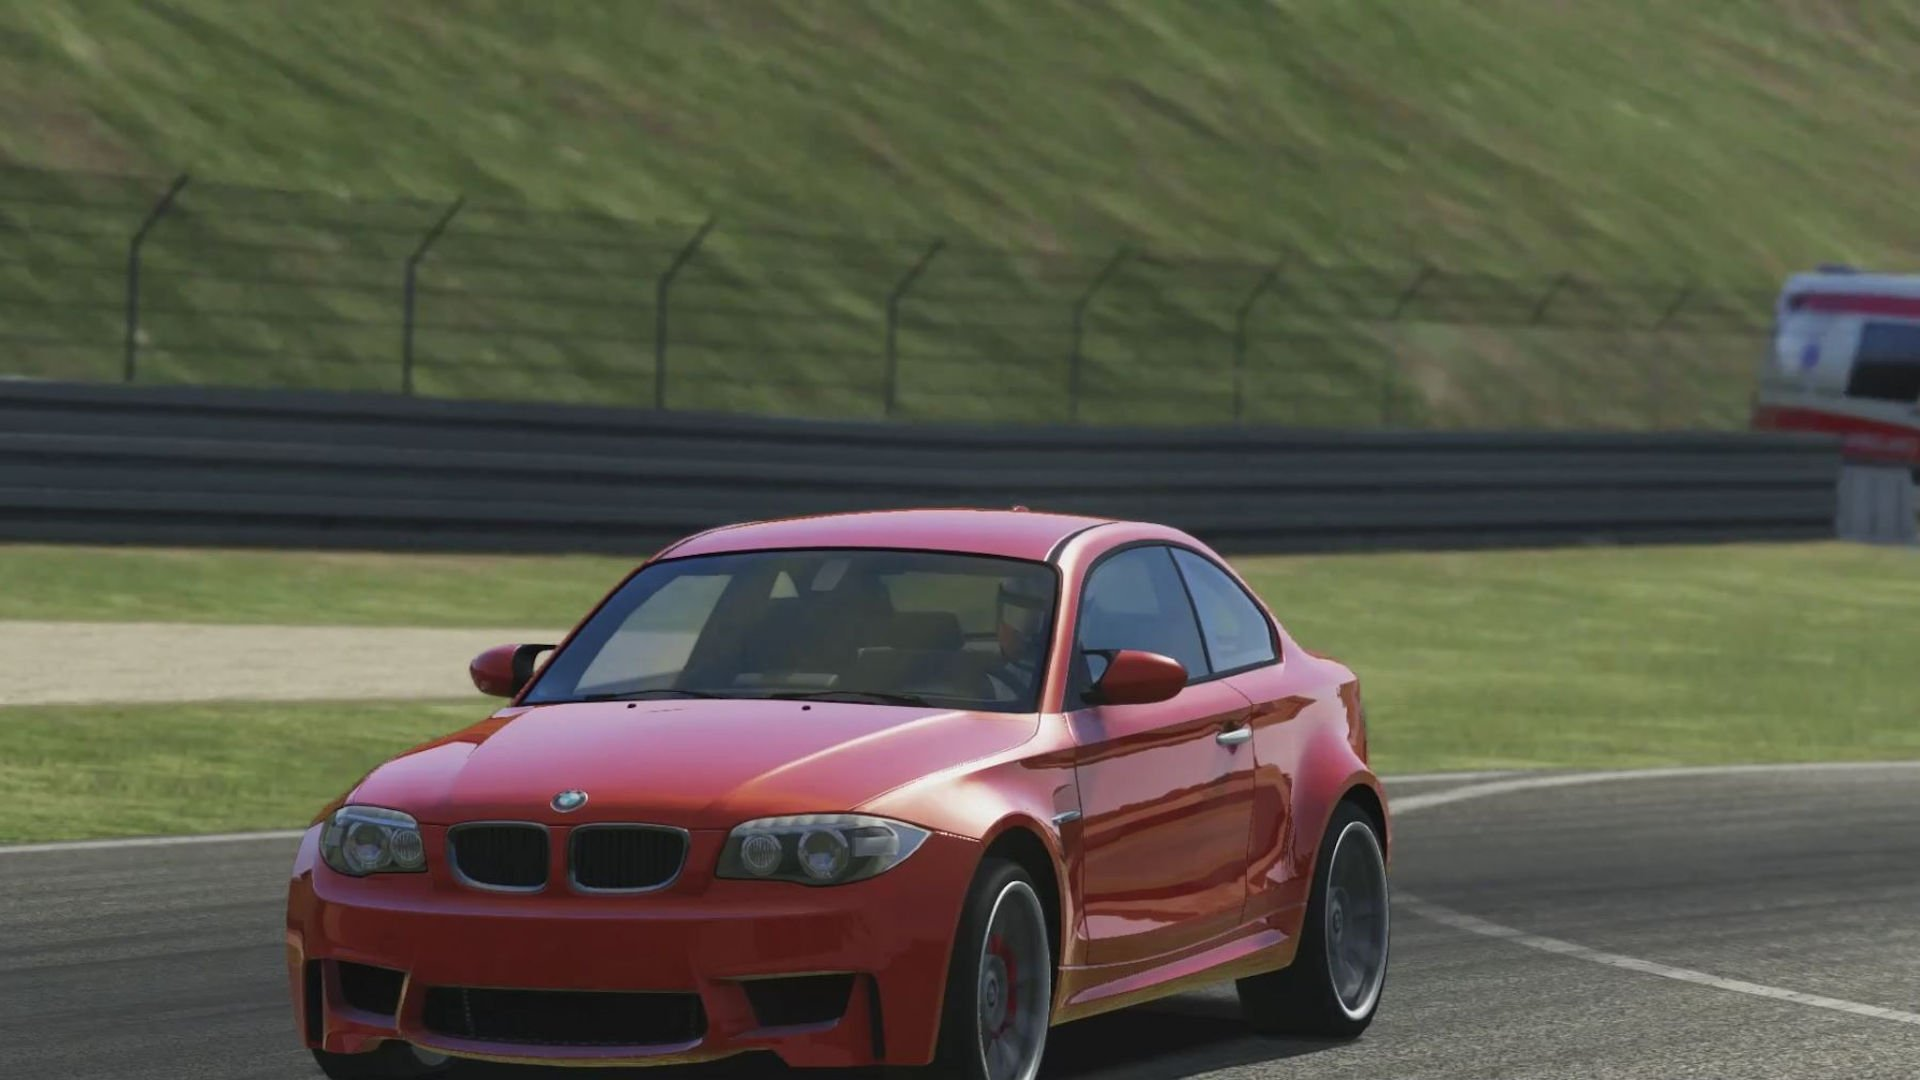 Assetto-Corsa-PS4-Test-Drive-Career-Novice-Series-2